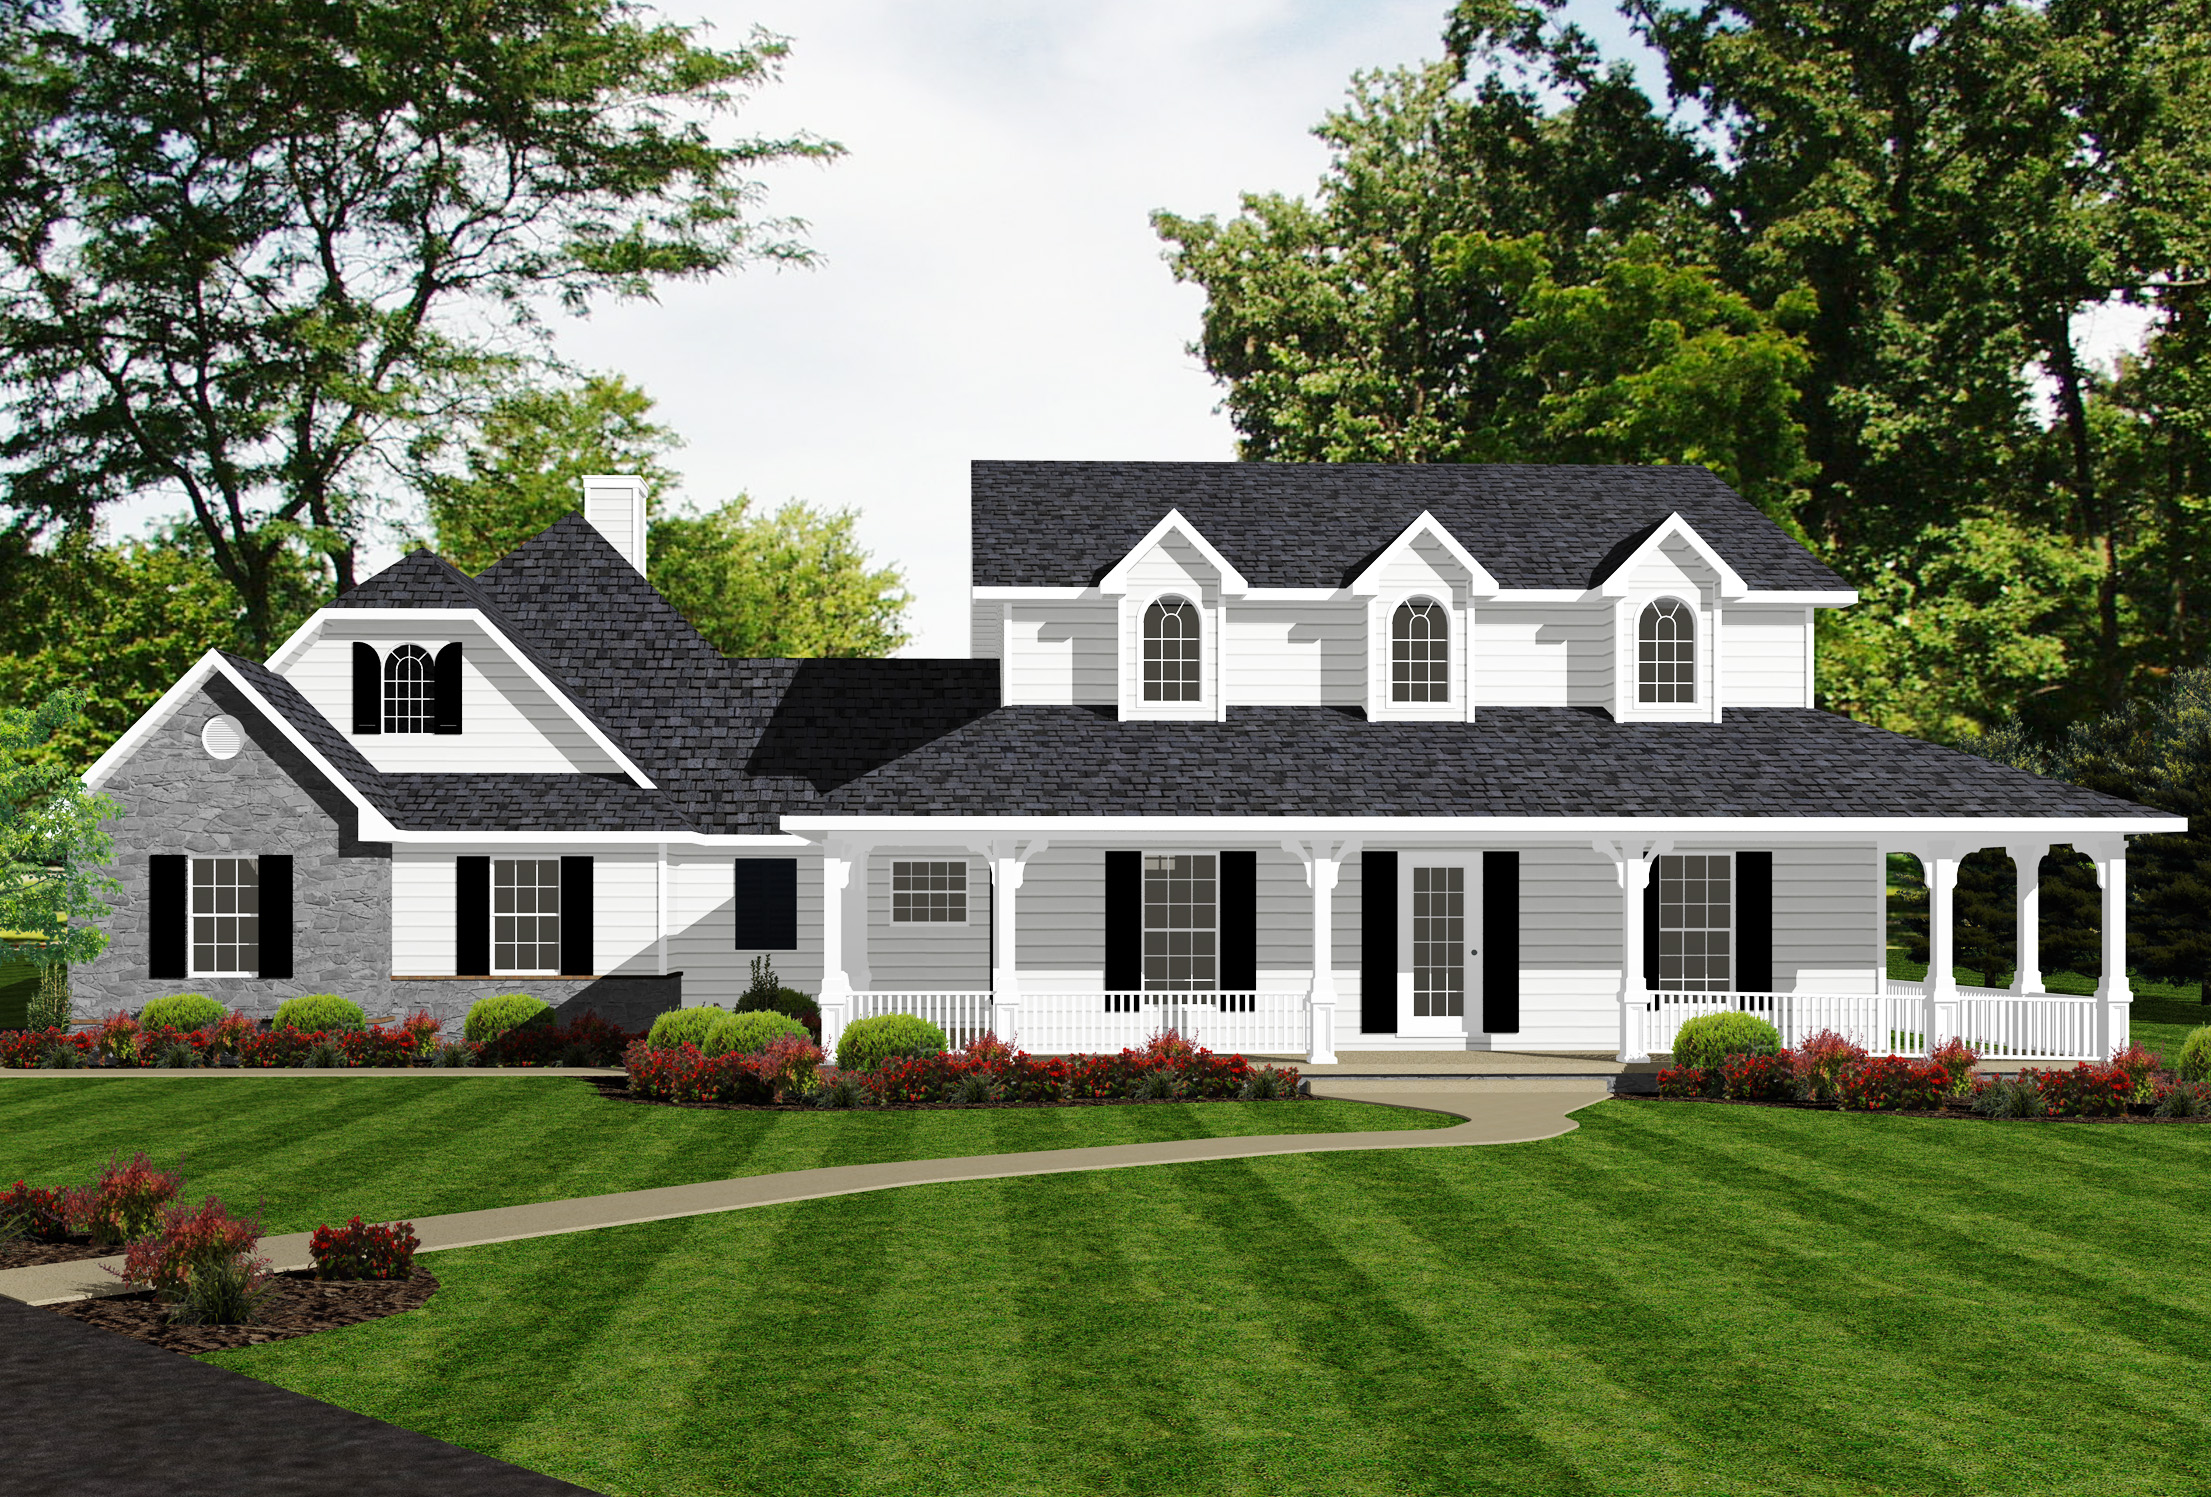 Farmhouse With Classy Master Suite - 3484vl